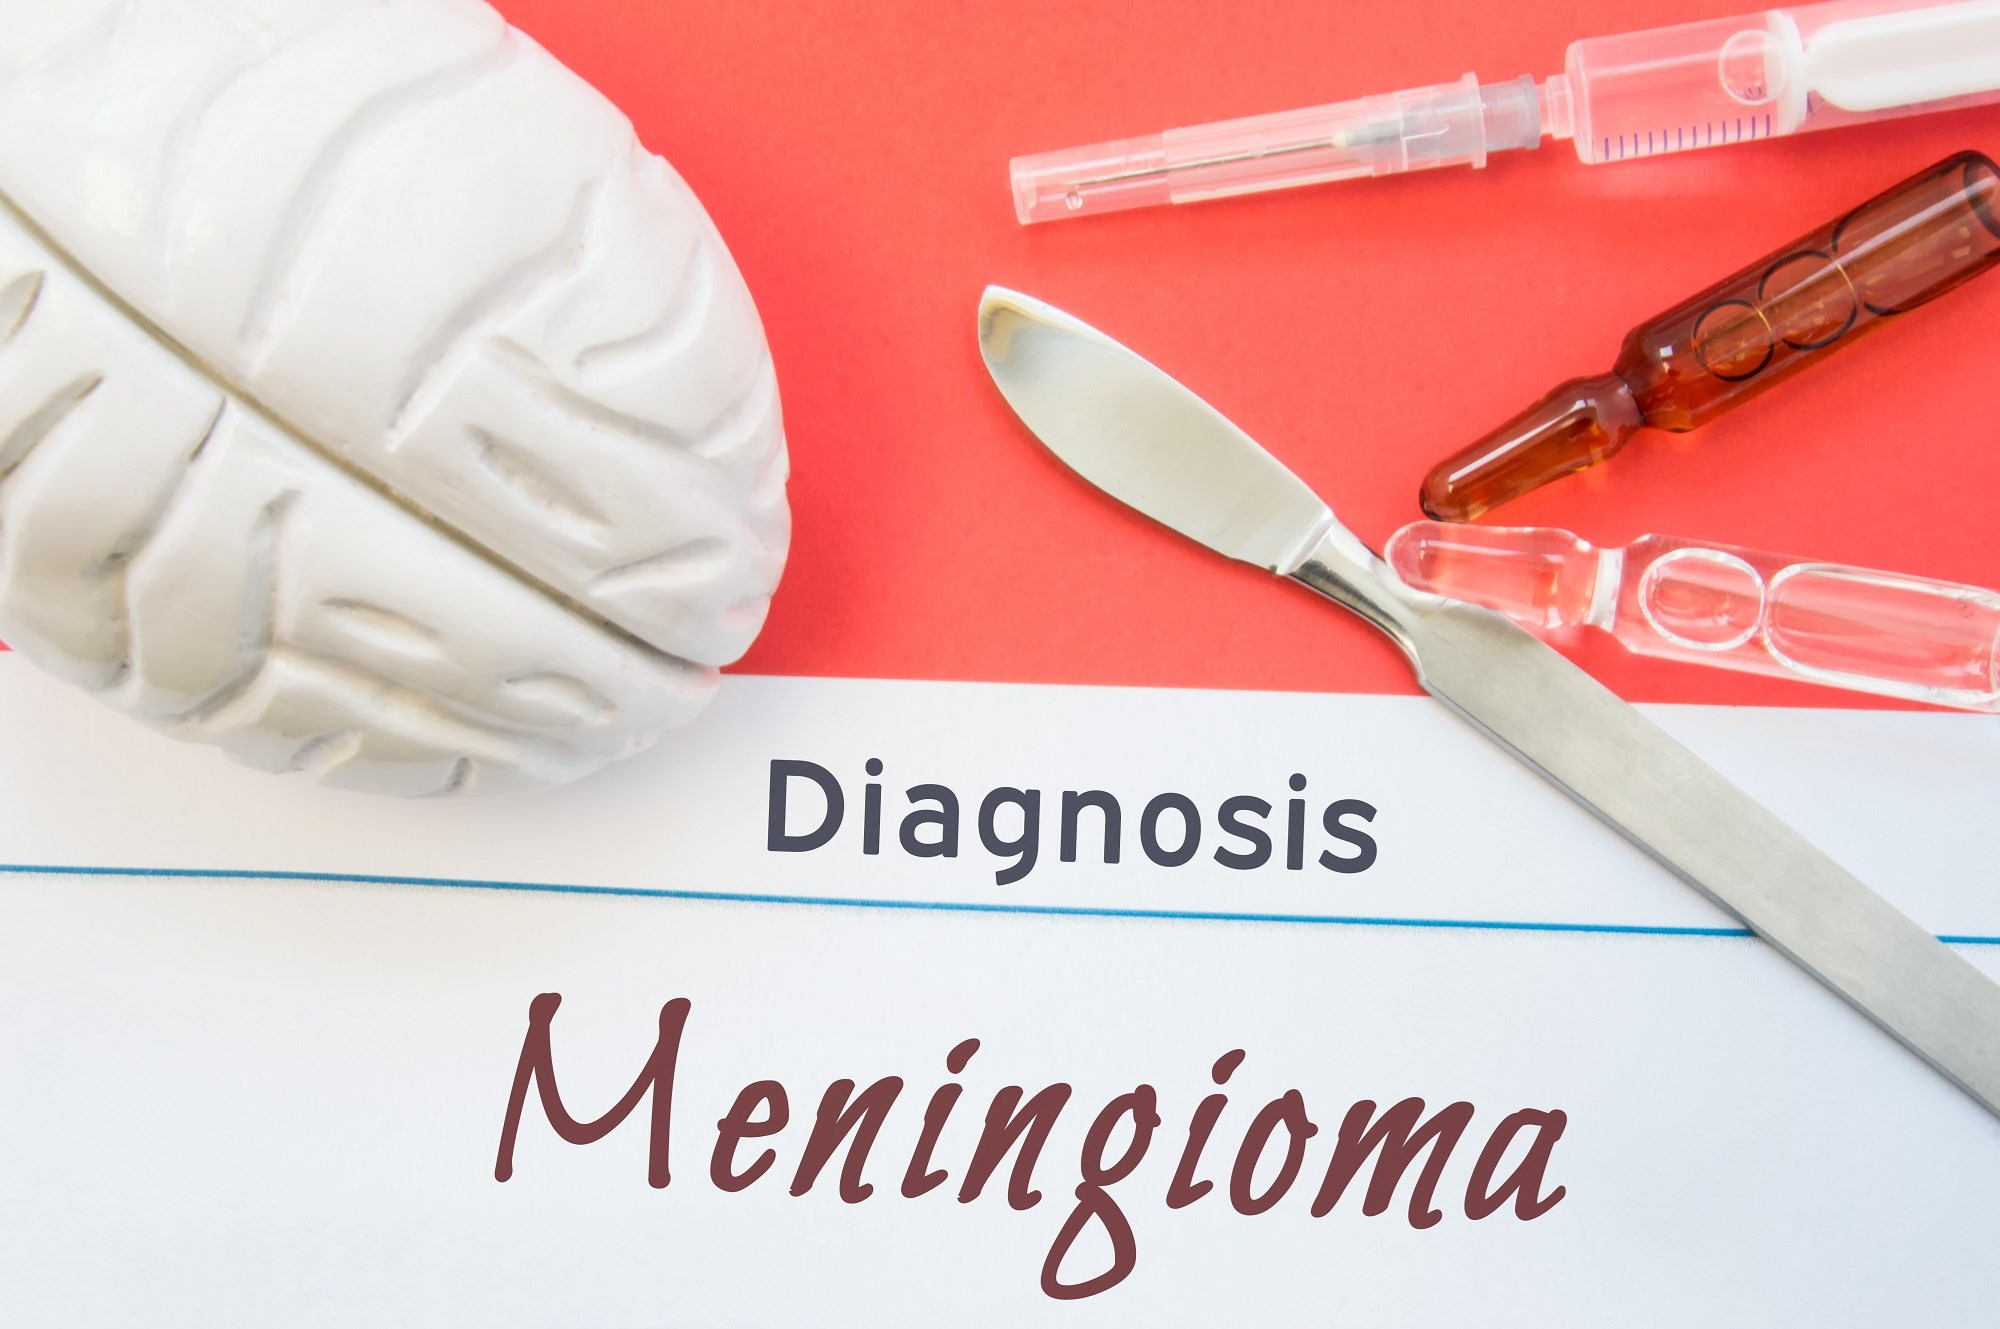 Higher Risk for Meningioma Linked to GH Treatment, Radiotherapy During Childhood